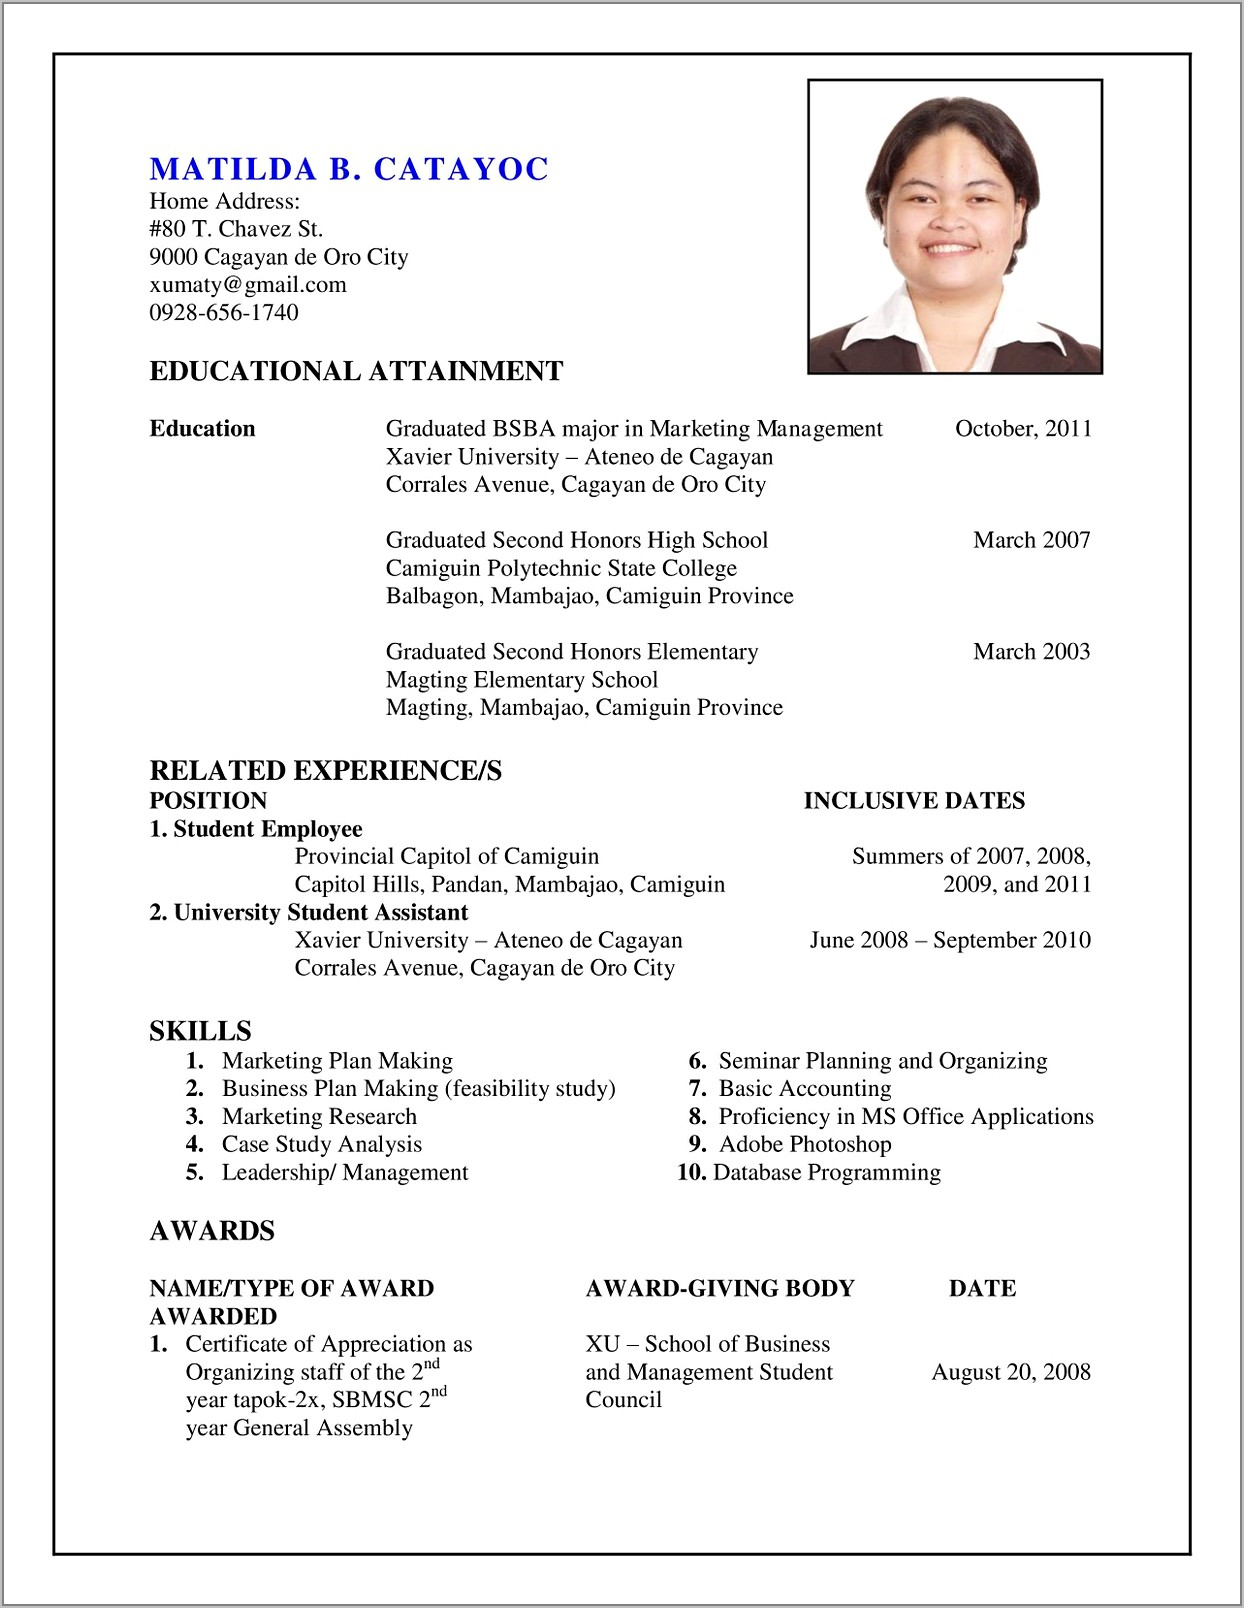 Resume Sample For A Teenager